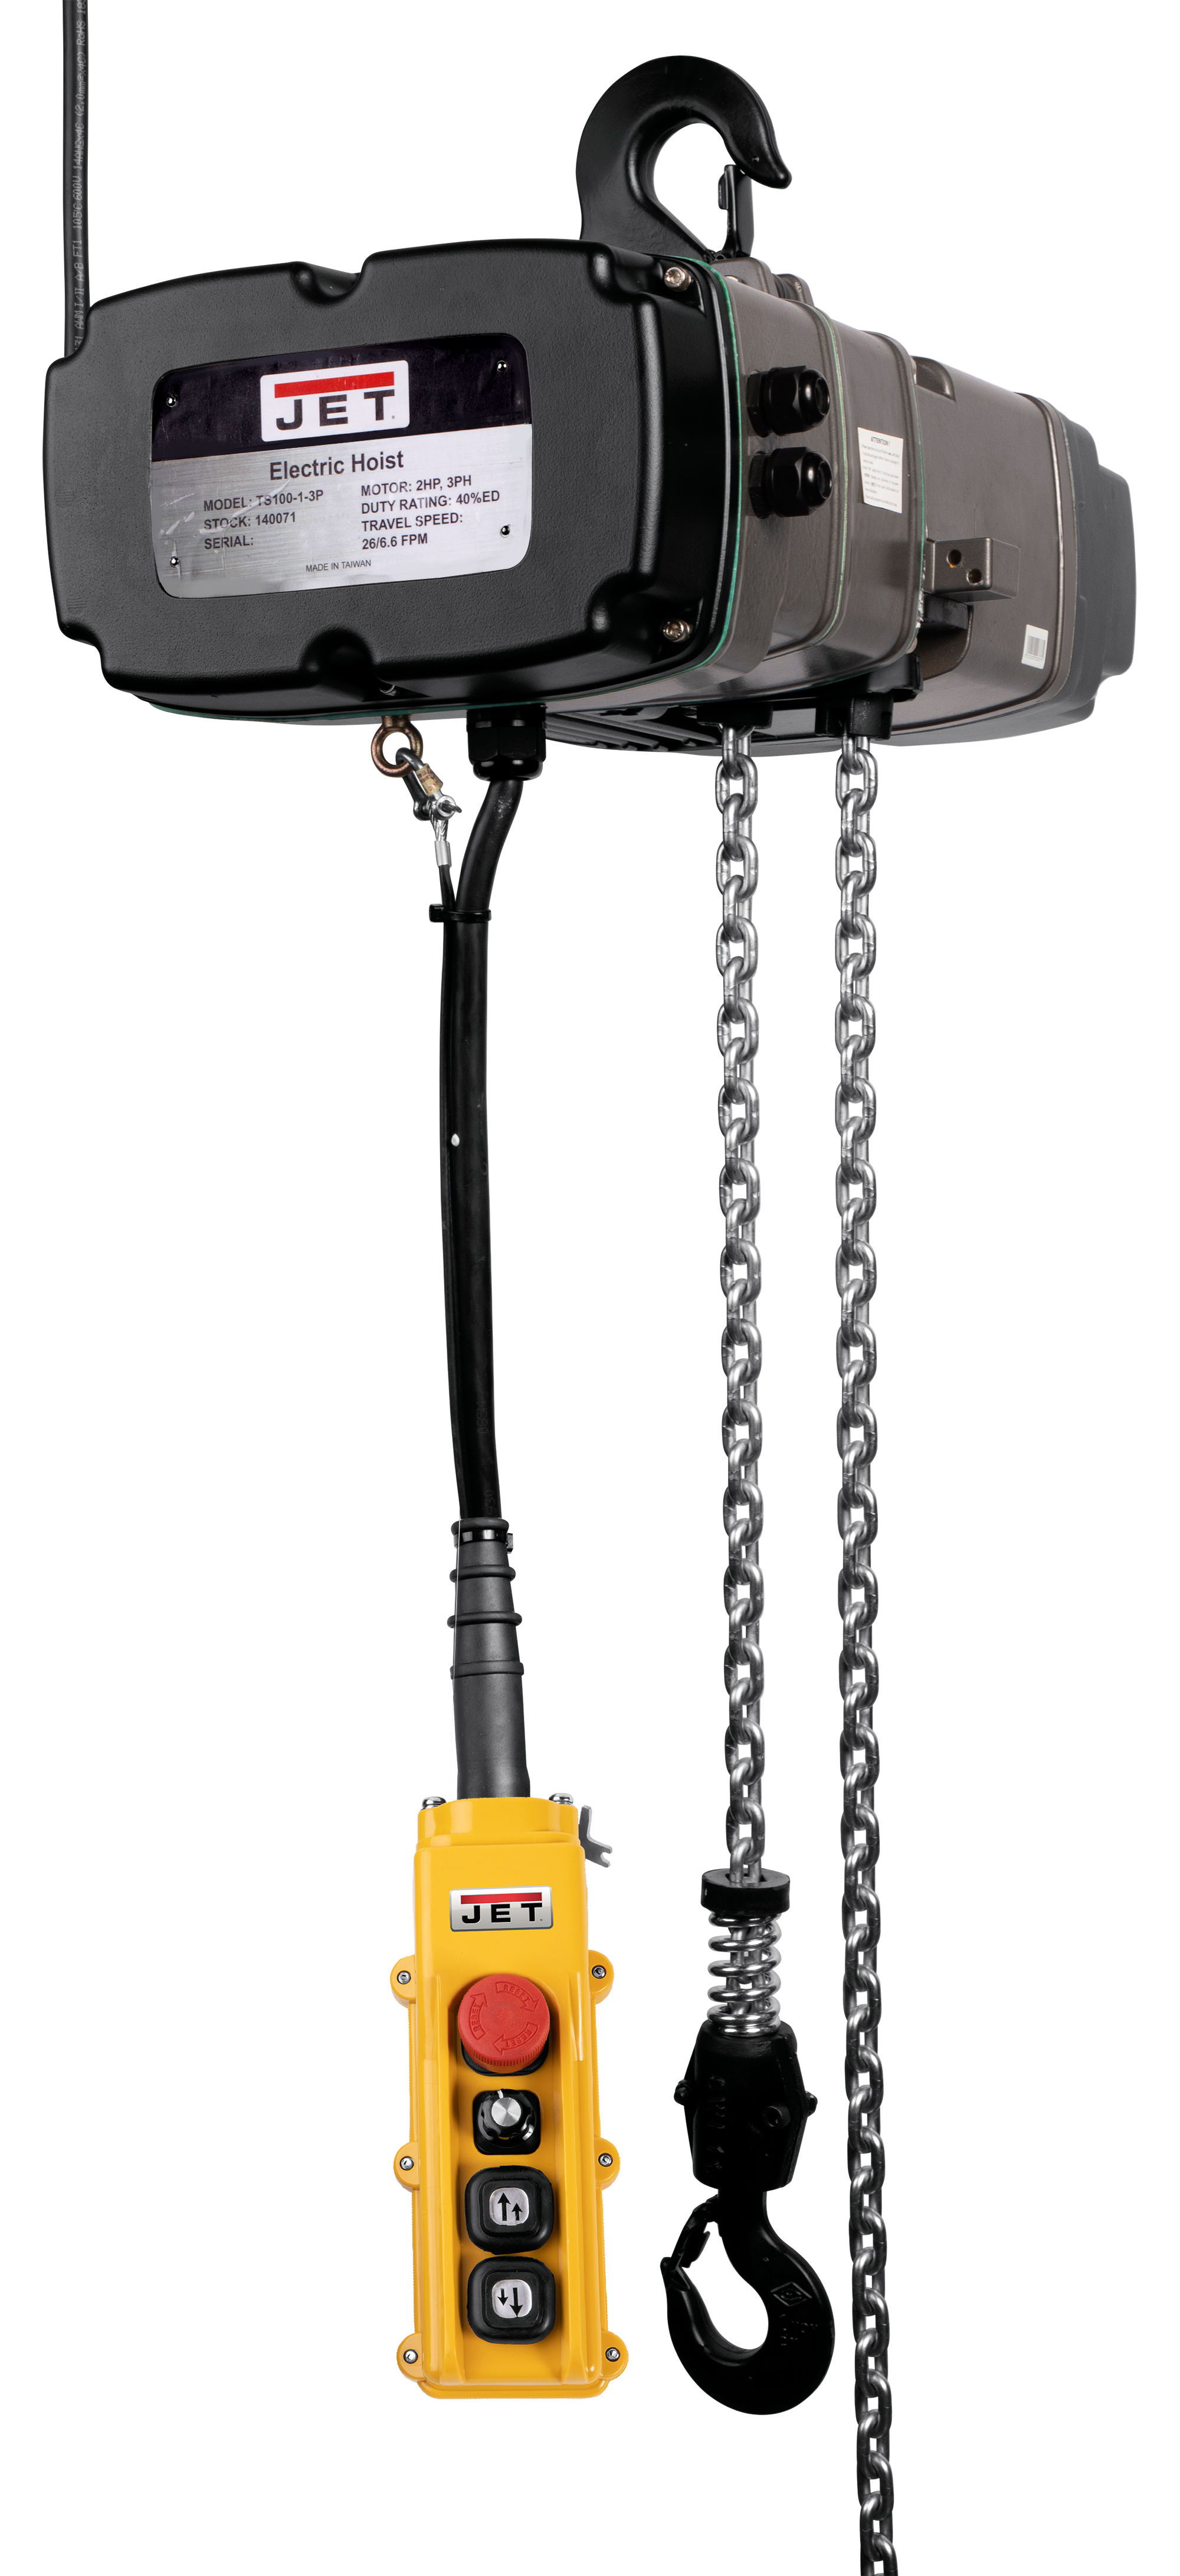 TS500-460-010,5-Ton Two Speed Electric Chain Hoist  3-Phase 10' Lift